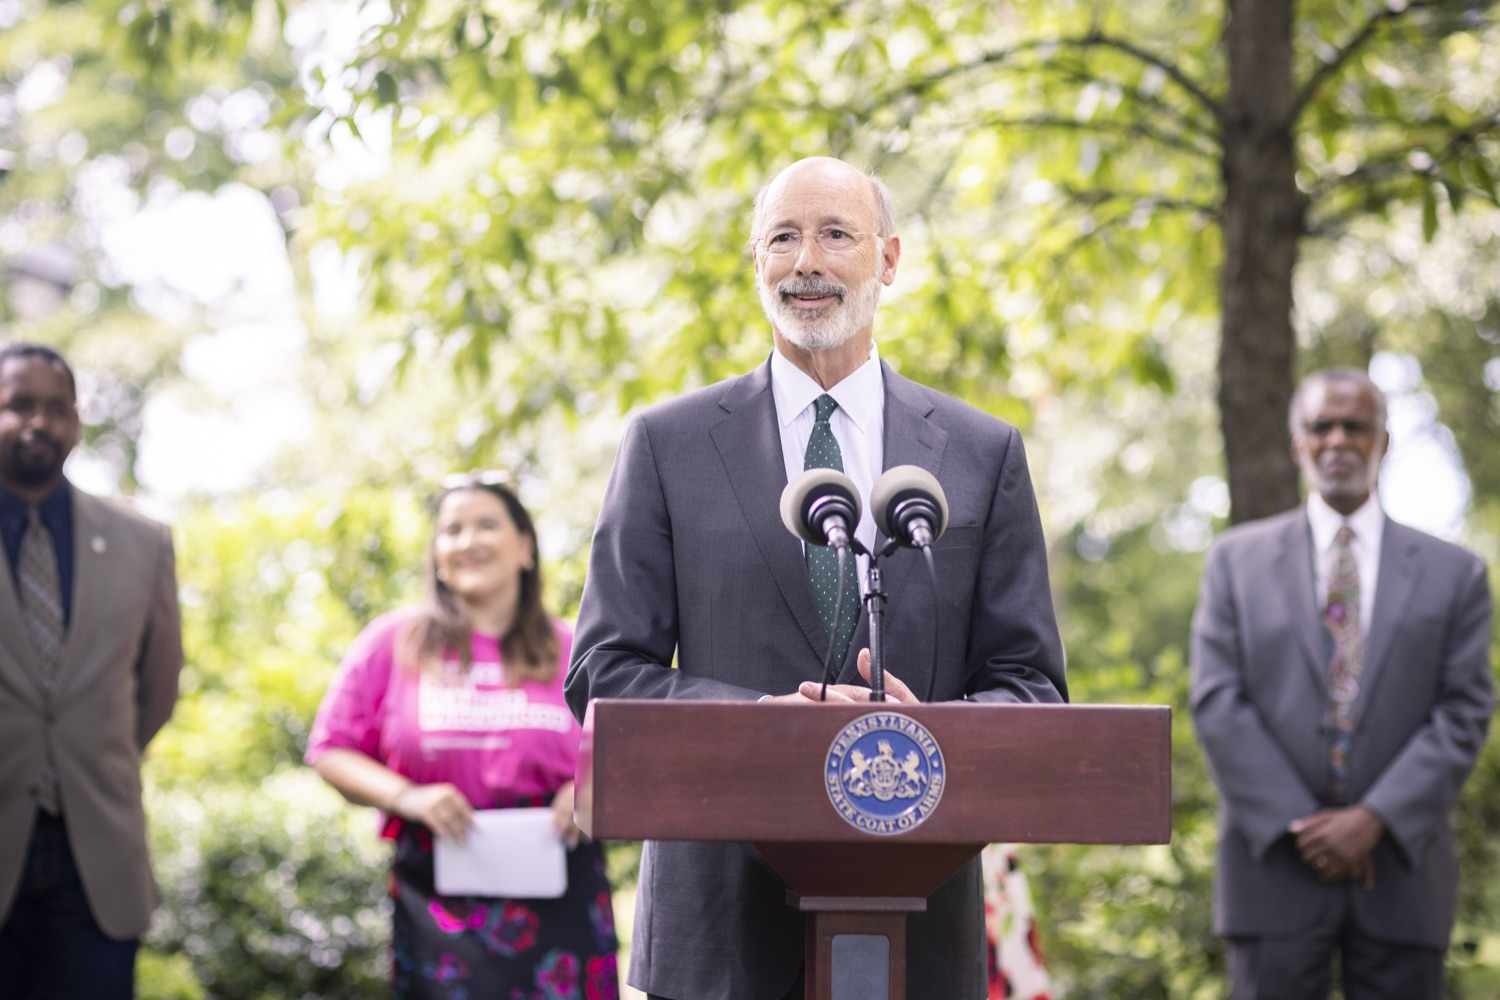 """<a href=""""https://filesource.wostreaming.net/commonwealthofpa/photo/18819_gov_reprodRights_dz_013.jpg"""" target=""""_blank"""">⇣Download Photo<br></a>Pennsylvania Governor Tom Wolf speaking with the press. Pennsylvania Governor Tom Wolf speaking with the press. Governor Wolf will discuss proposed anti-choice legislation that is moving through the House of Representatives and reaffirm that he will veto this damaging legislation.  JUNE 10, 2021 - PHILADELPHIA, PA"""